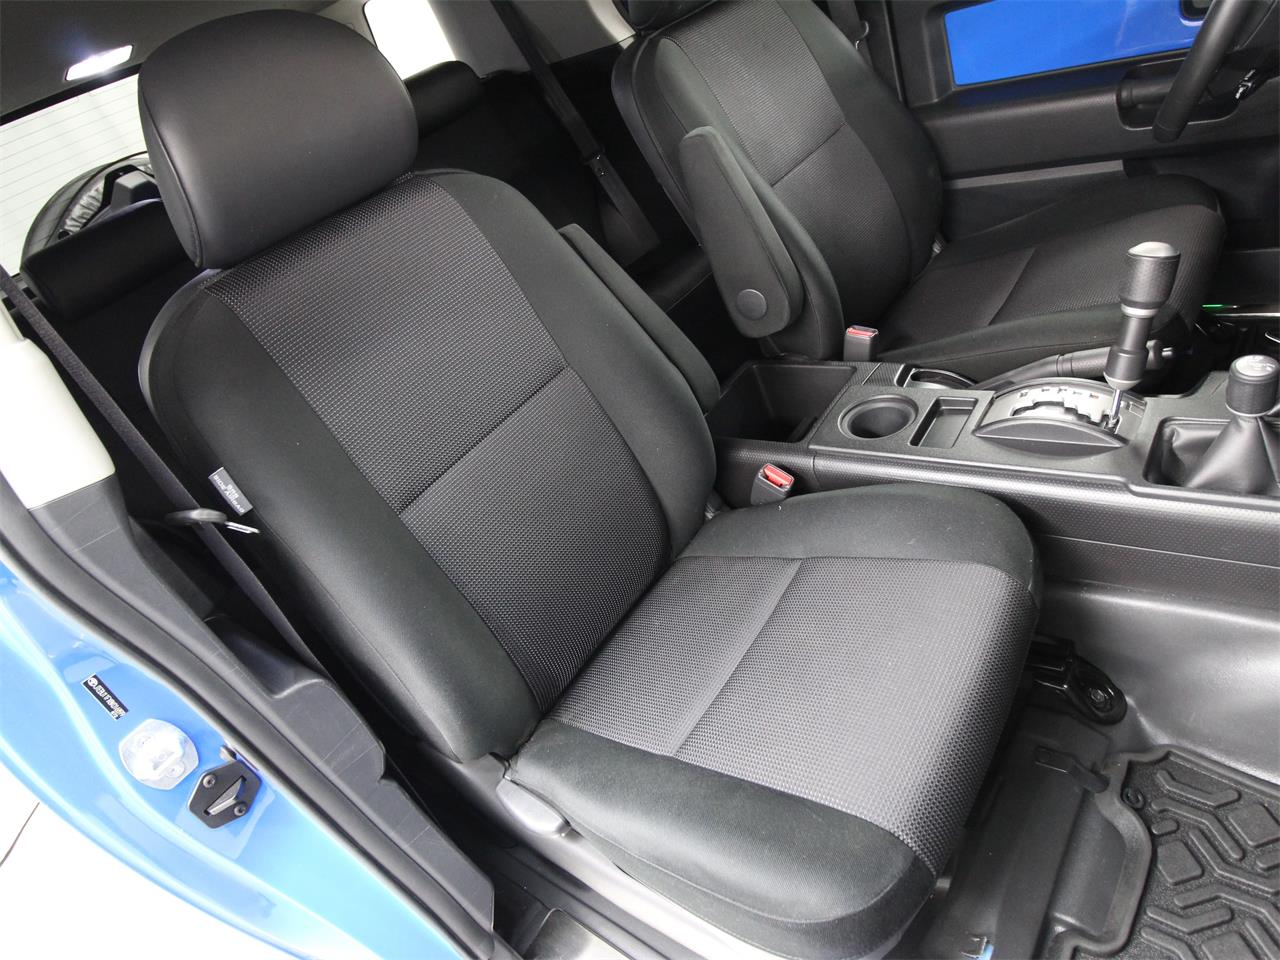 Large Picture of 2008 Toyota FJ Cruiser located in Virginia - $24,997.00 Offered by Duncan Imports & Classic Cars - PY12